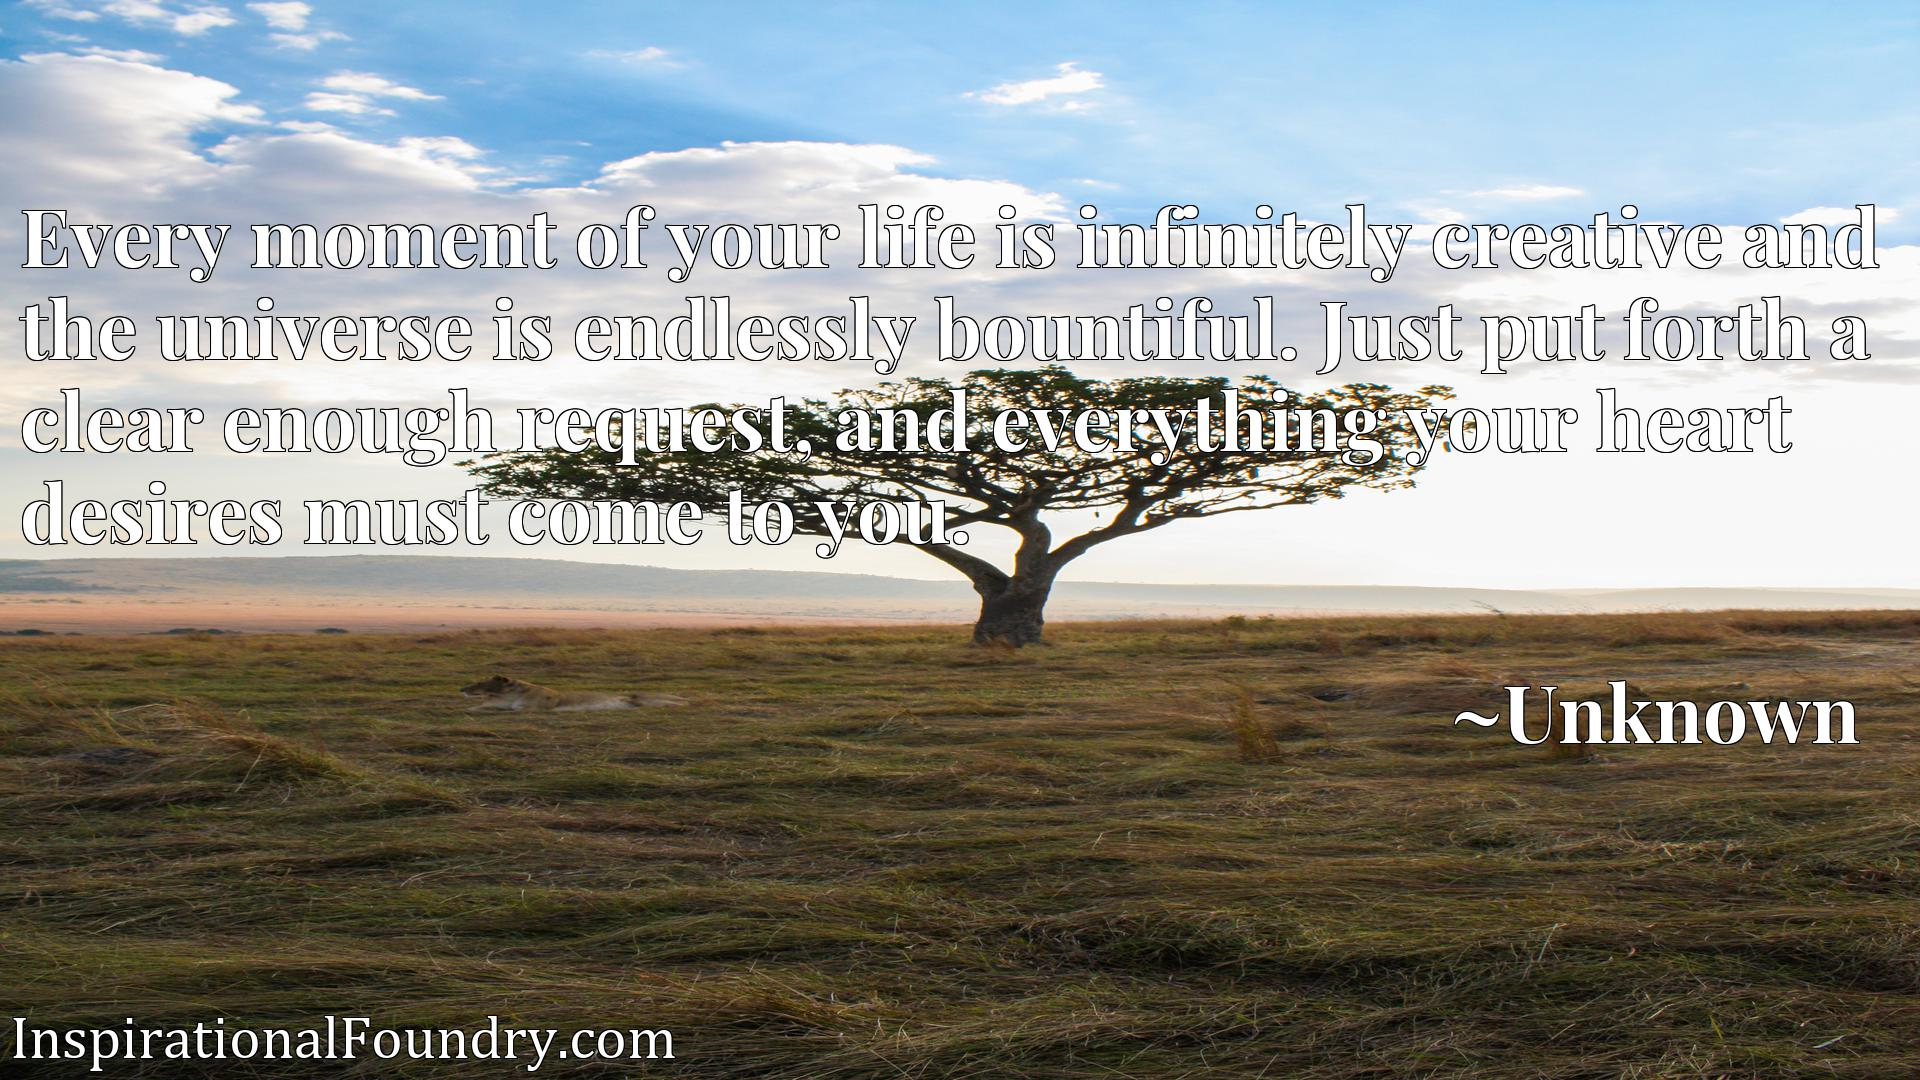 Quote Picture :Every moment of your life is infinitely creative and the universe is endlessly bountiful. Just put forth a clear enough request, and everything your heart desires must come to you.